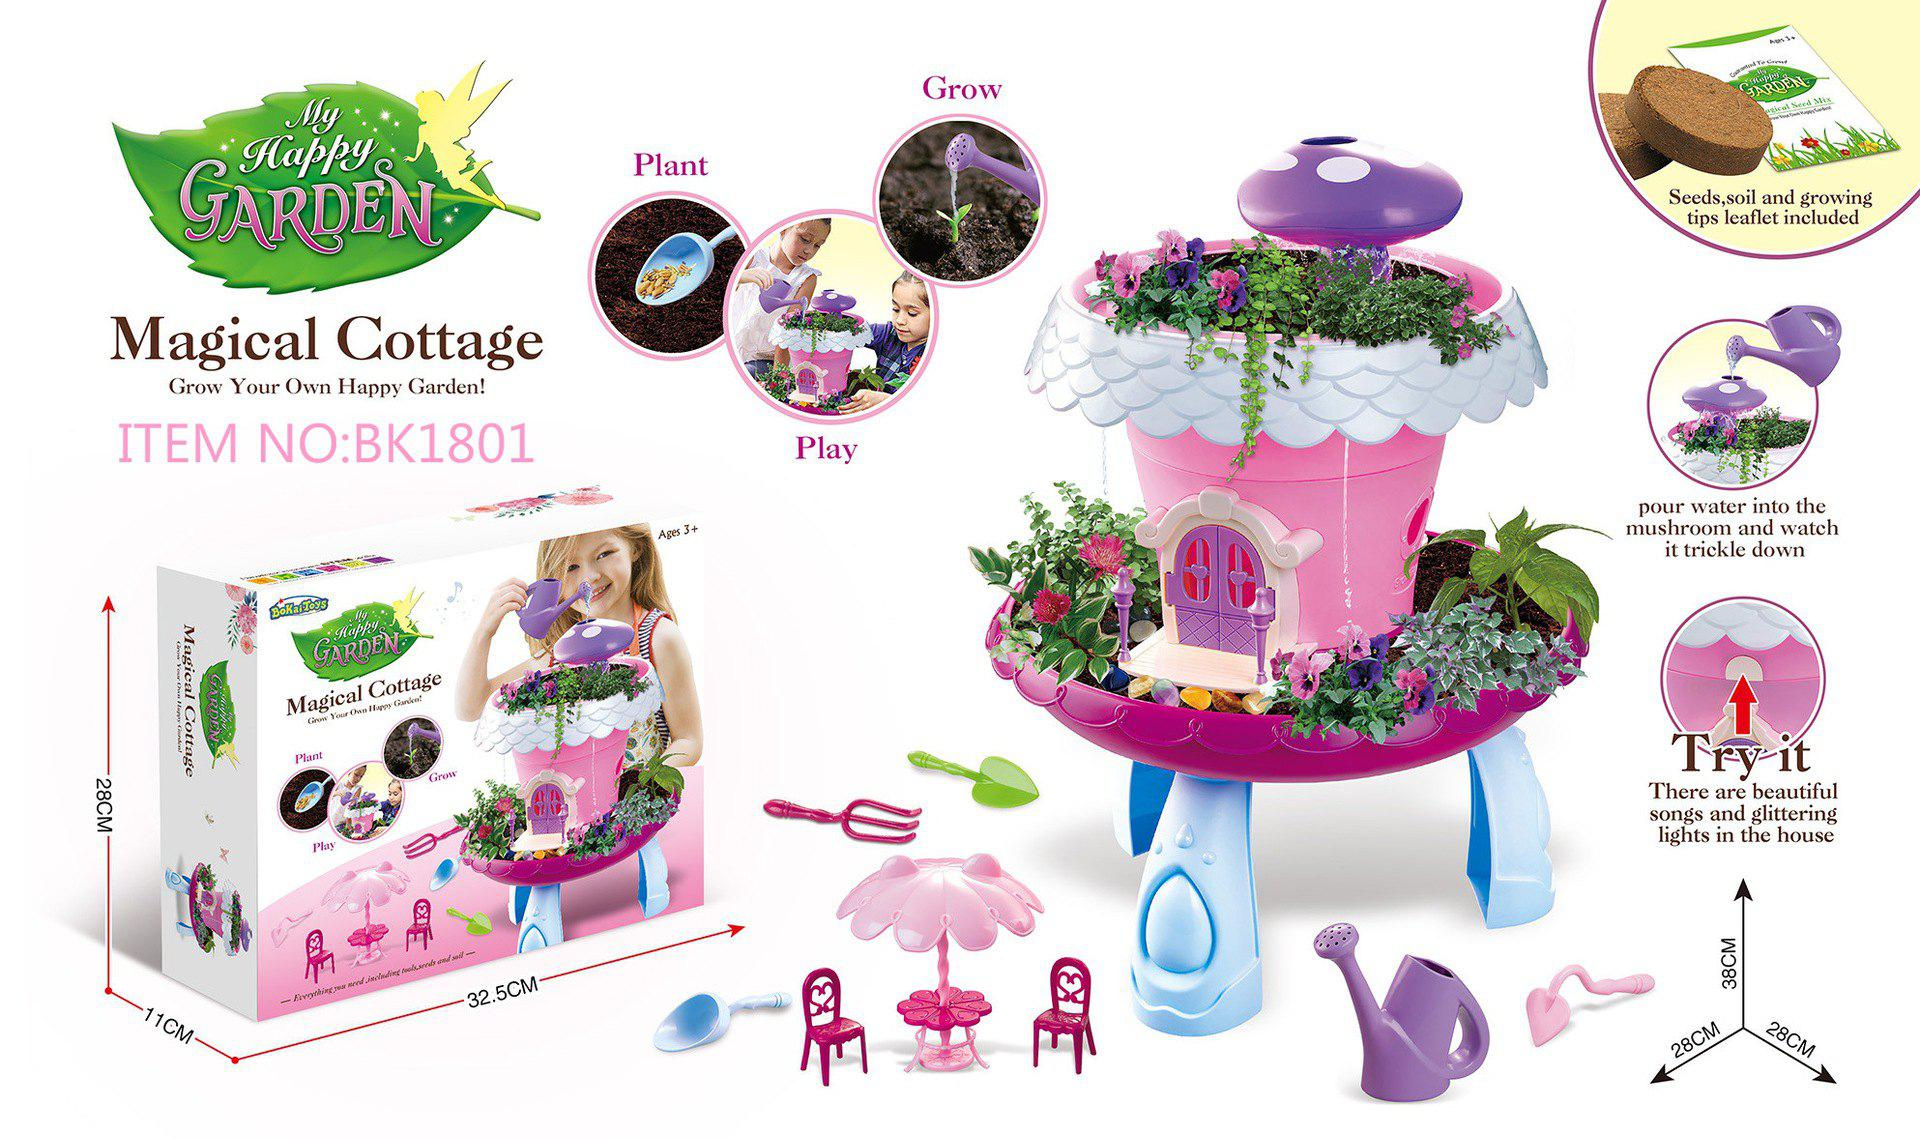 Hot Fairy Garden Huts With Light Music Planting Pots Magic Cottage Play House Toys